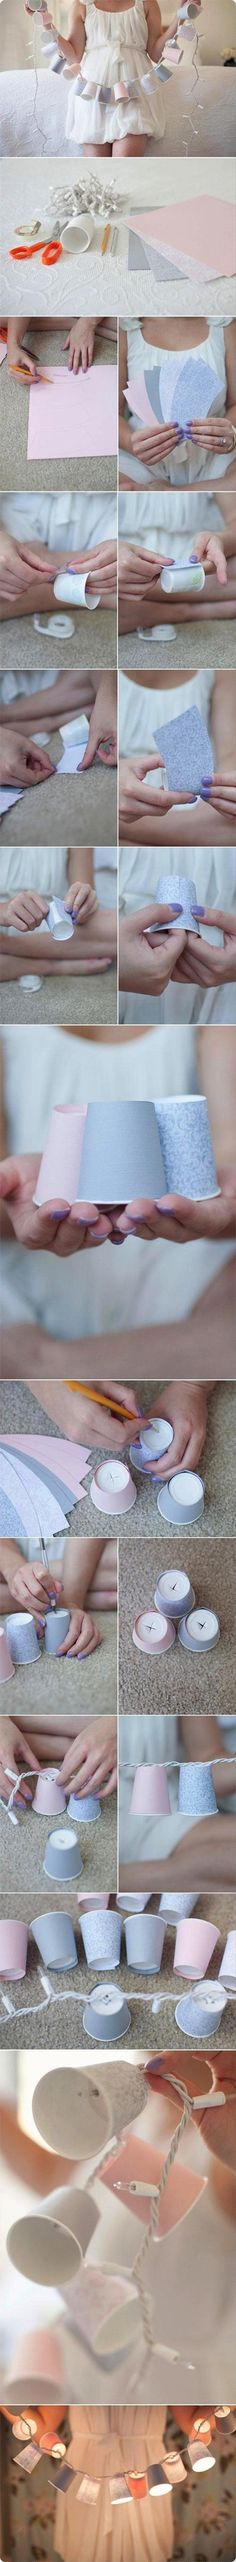 DIY / how to make cute fairylights from paper or plastic cups <3